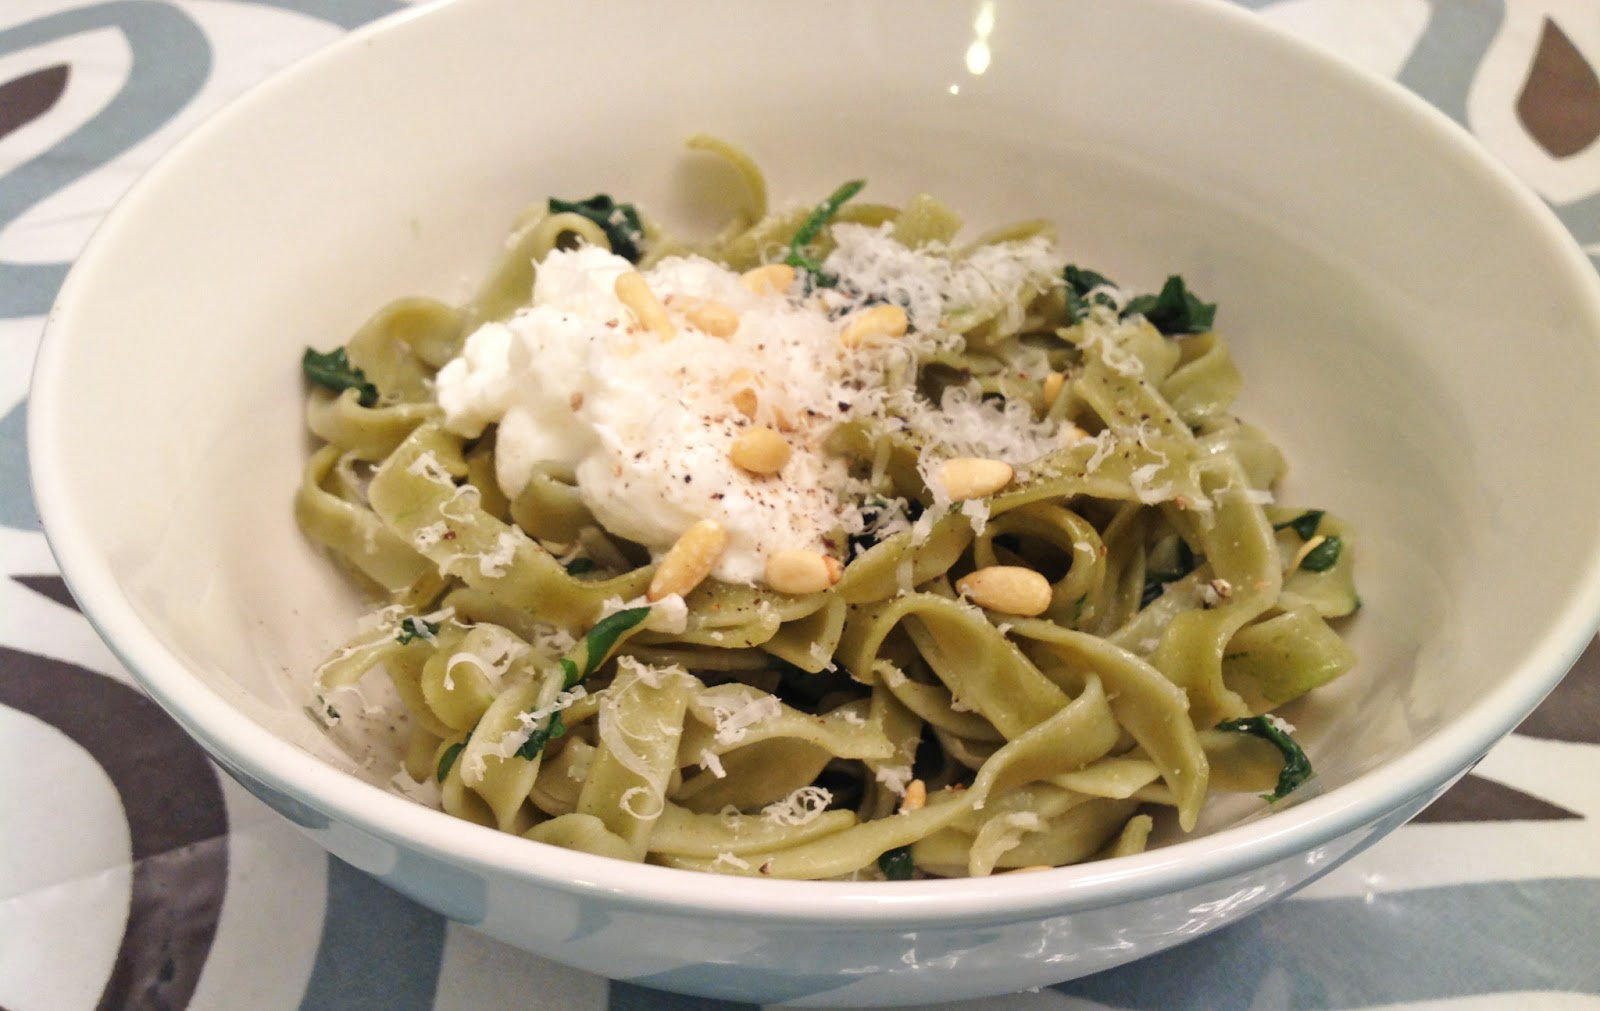 my back pages: spinach pasta with ricotta and pine nuts